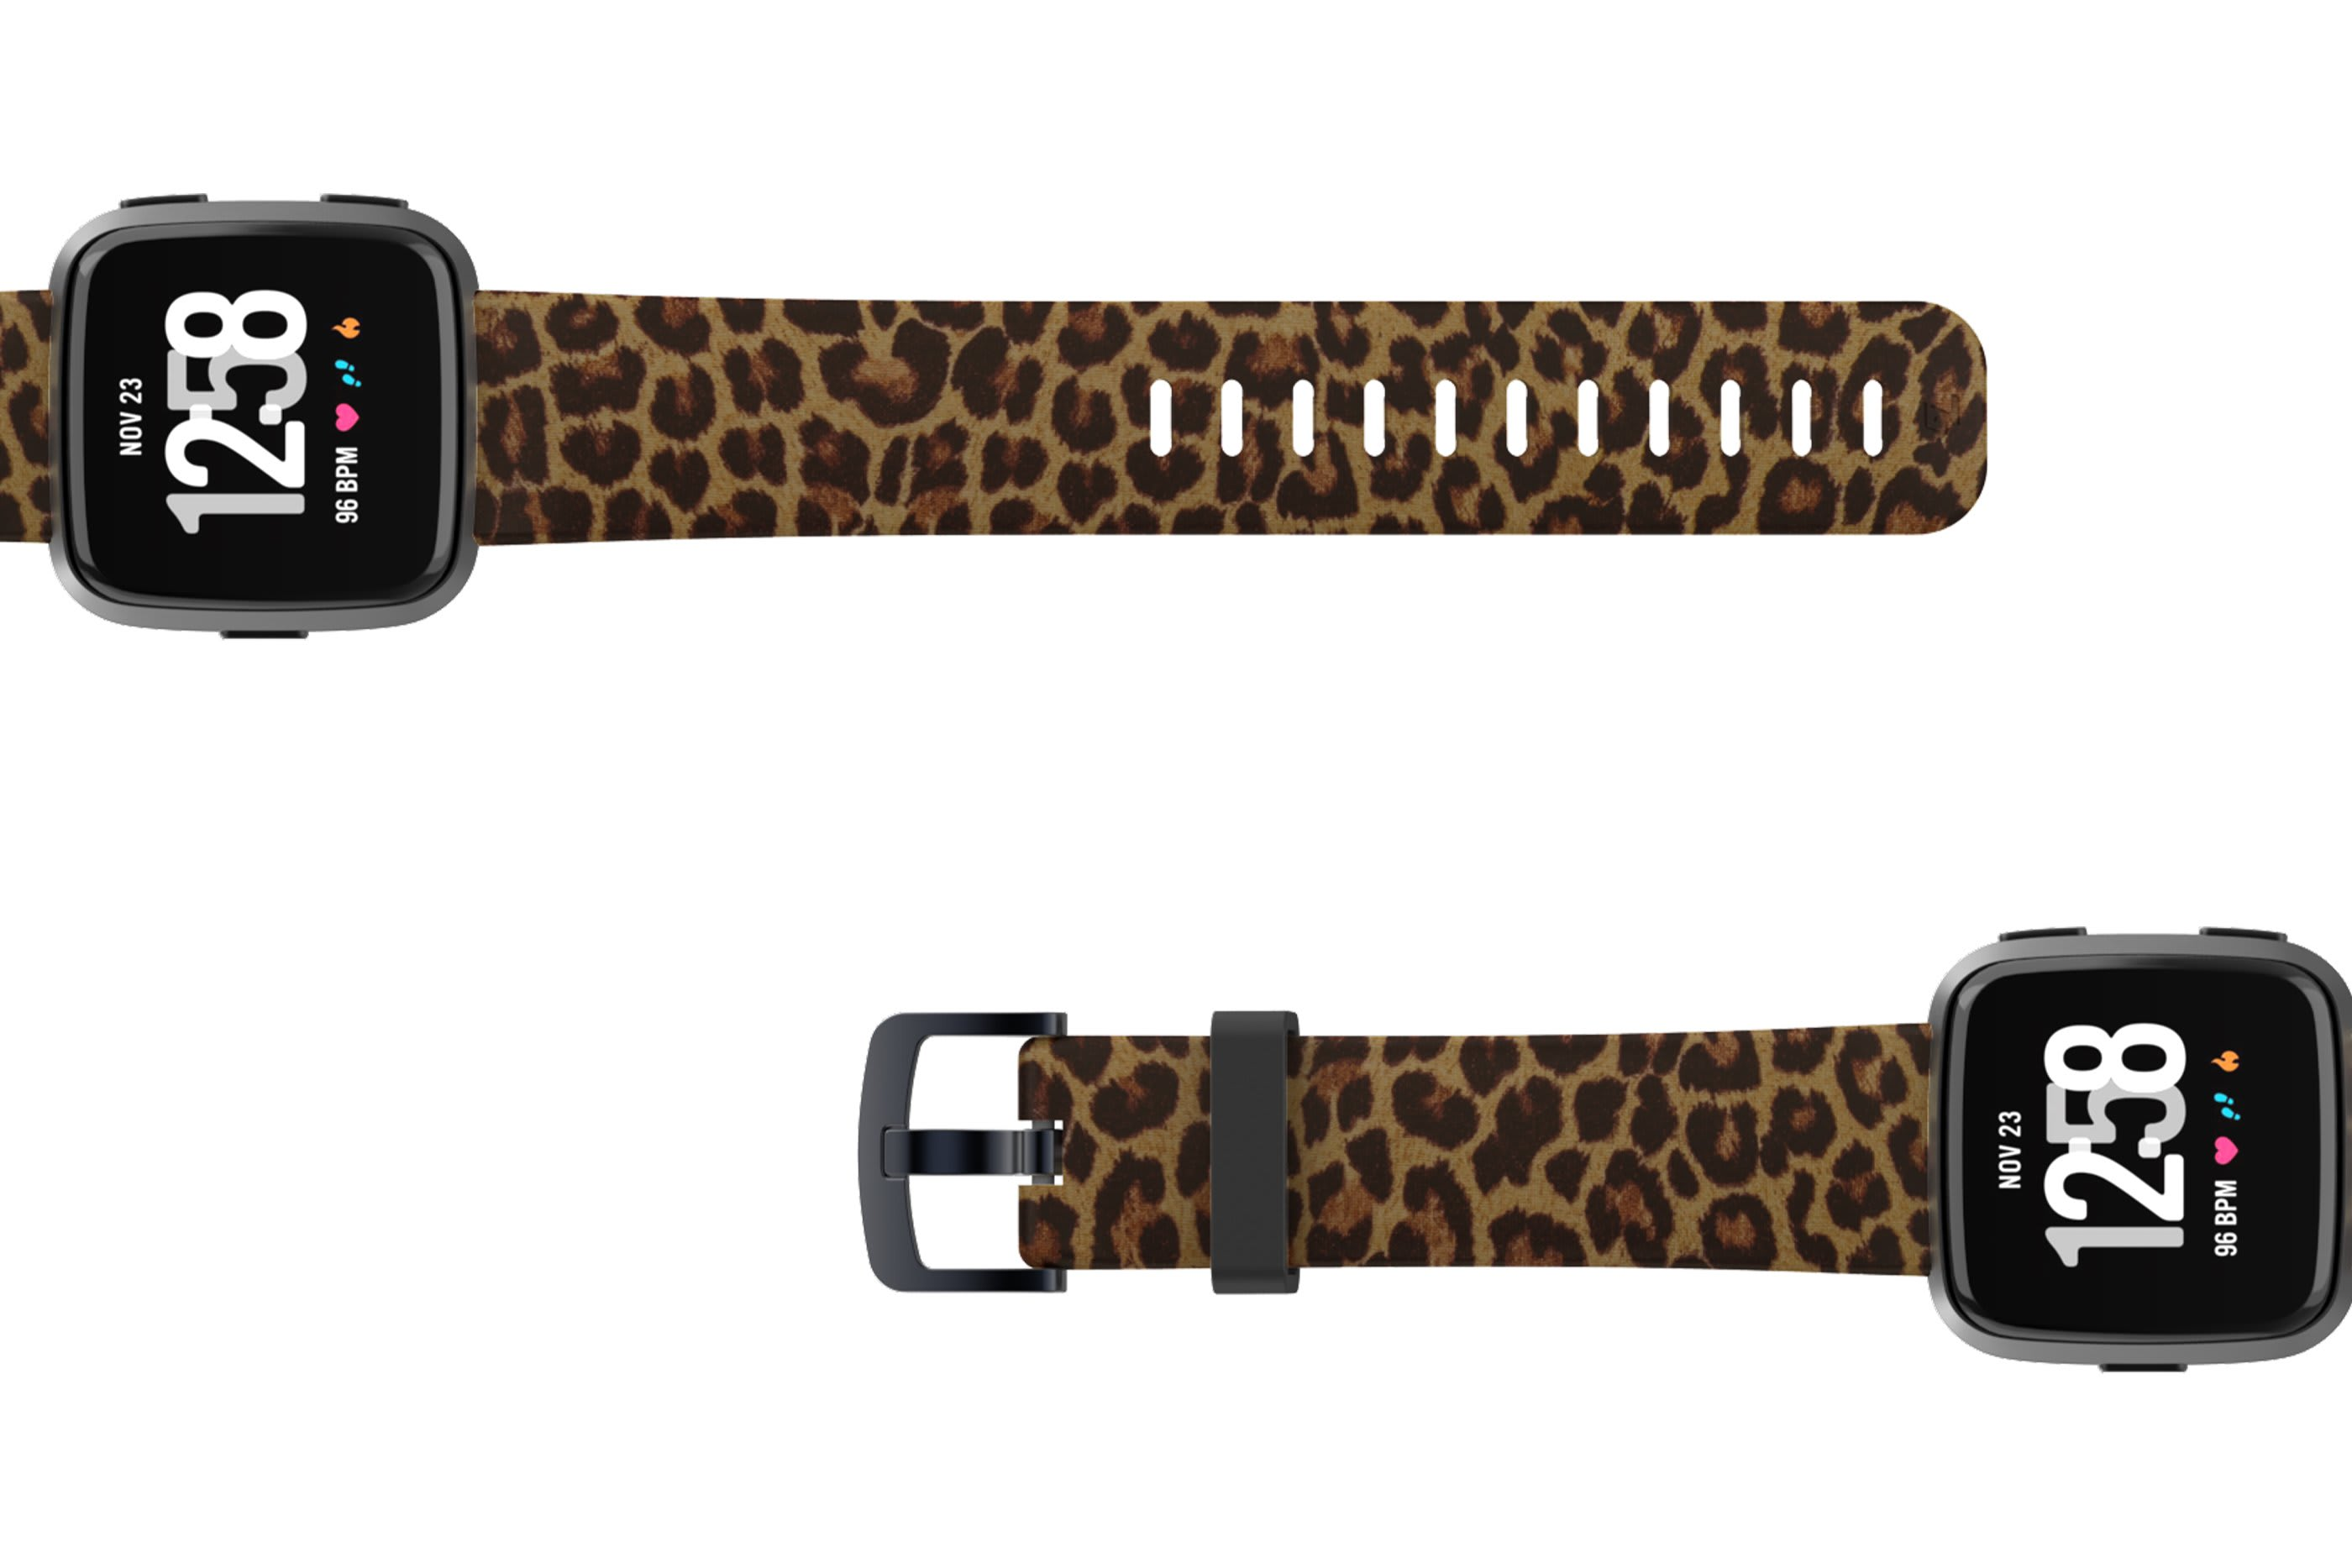 Leopard Fitbit Versa watch band with gray hardware viewed top down